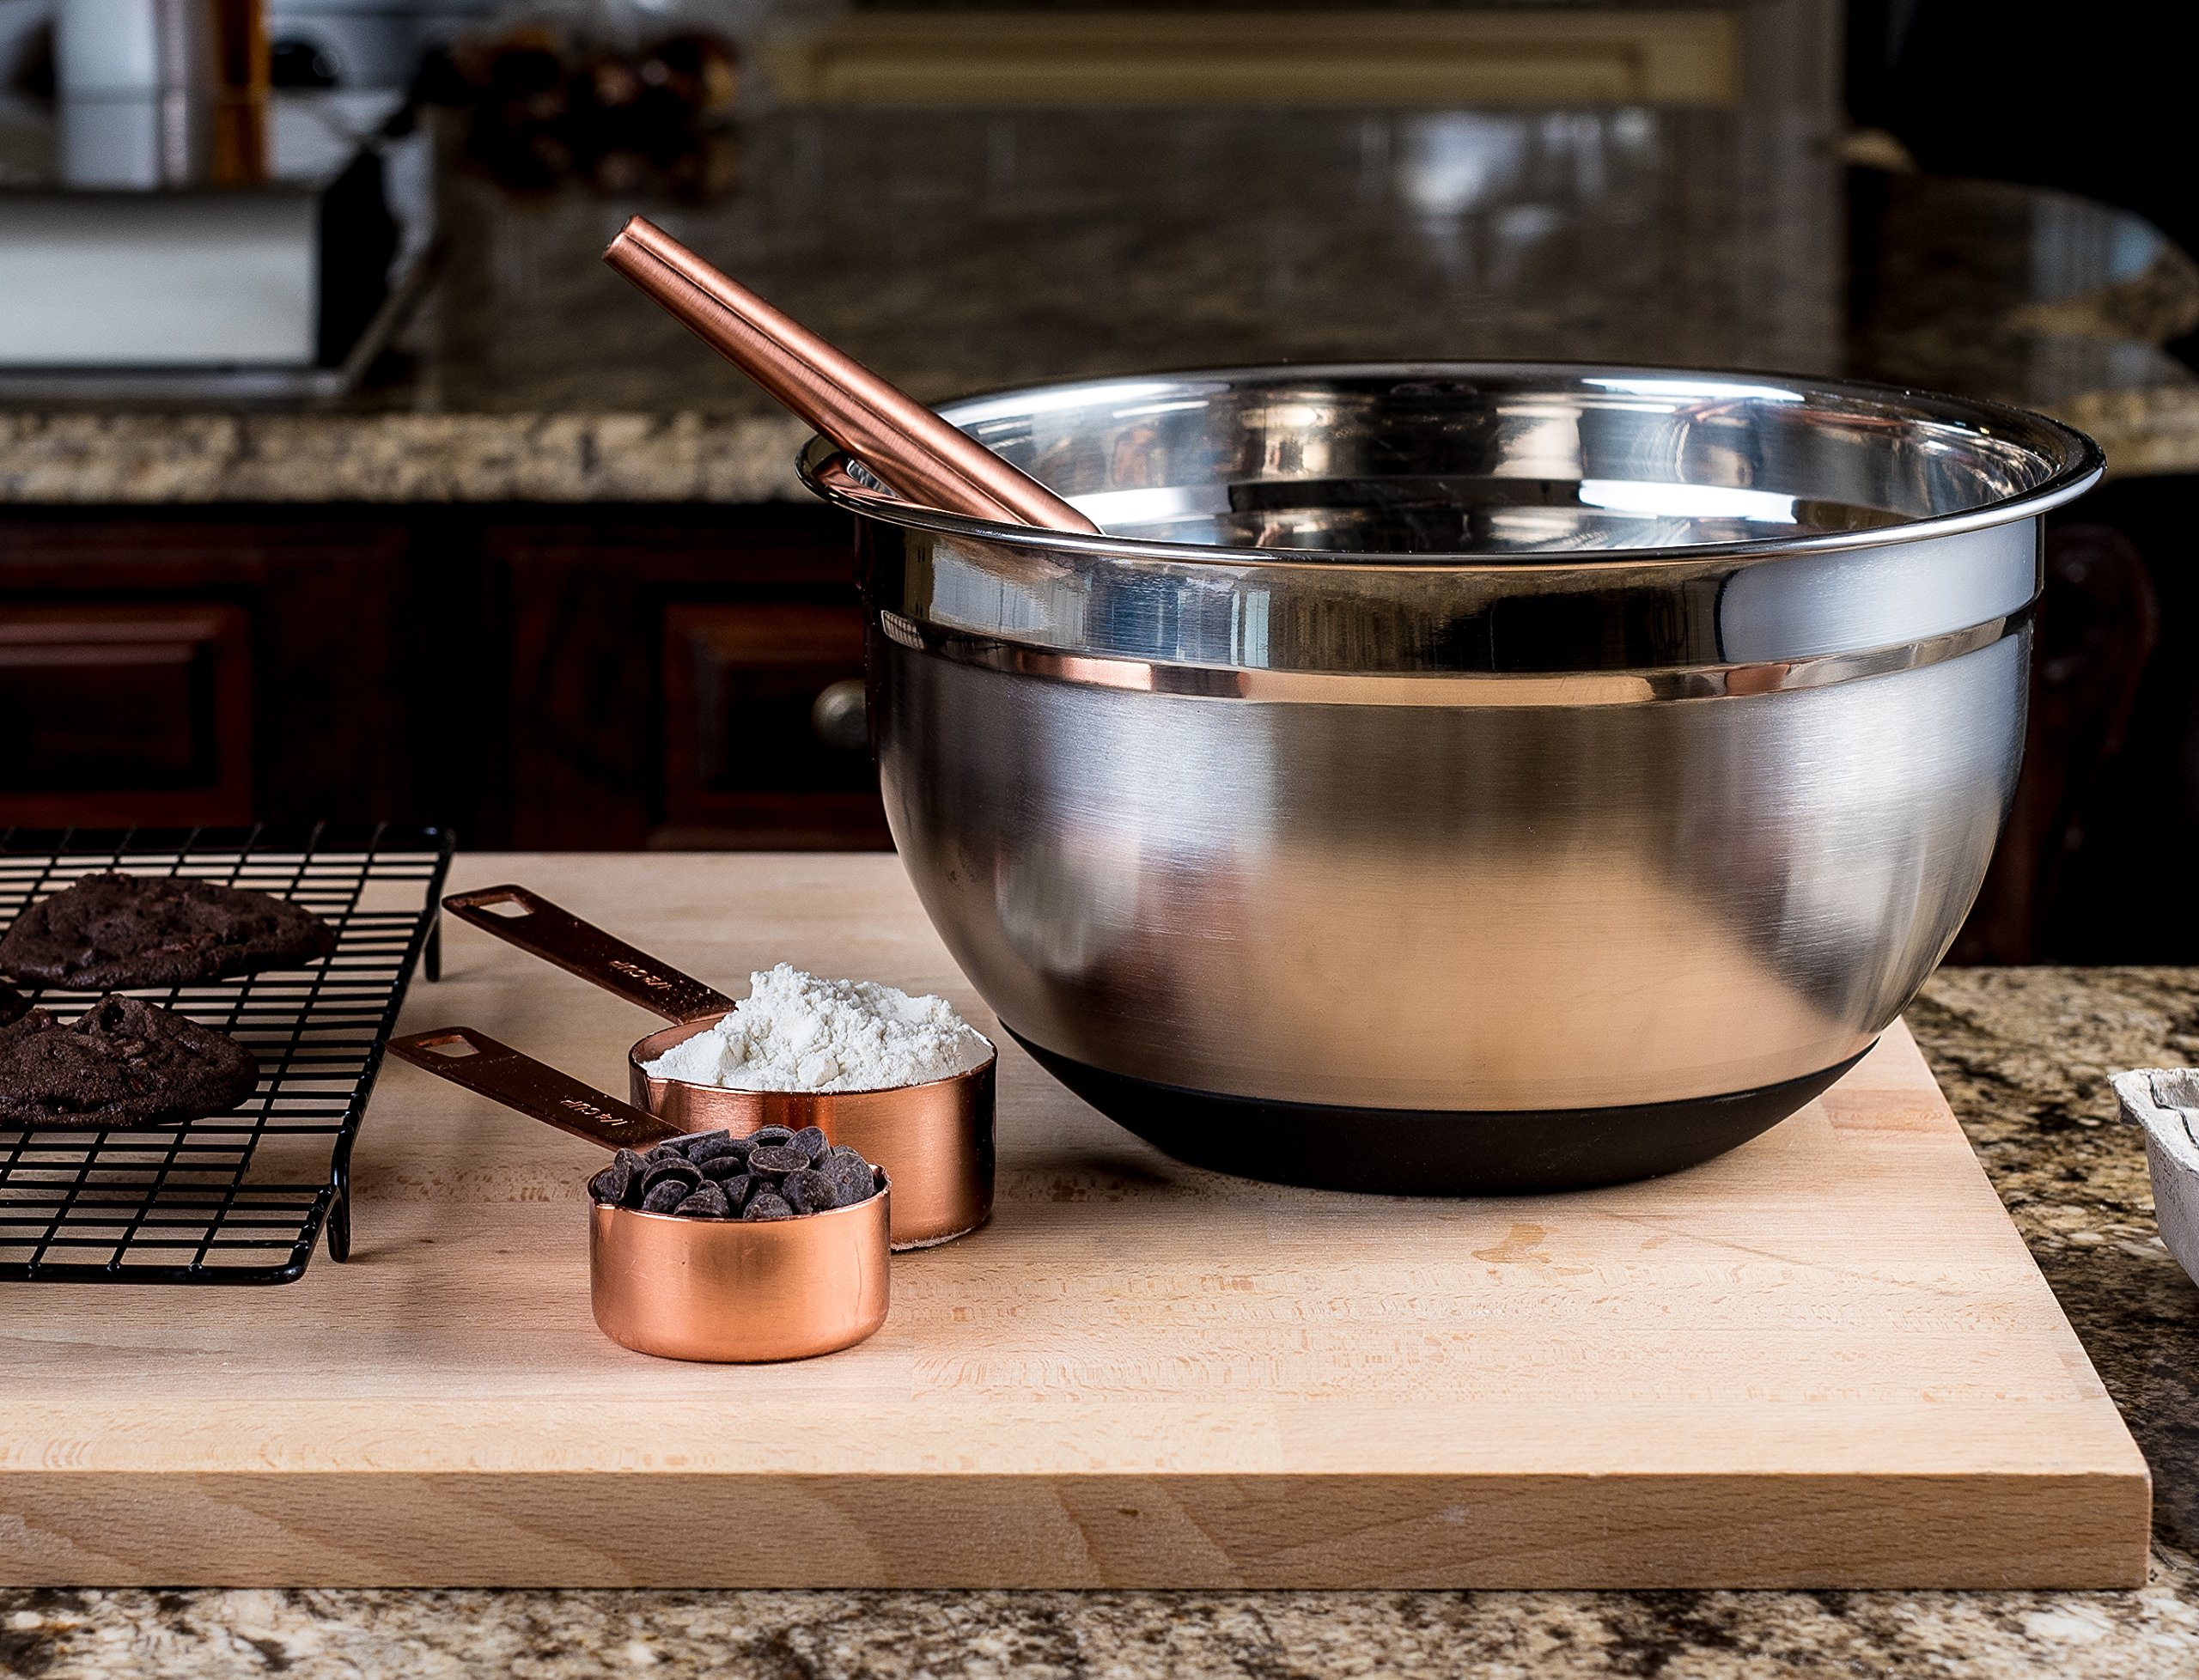 Top Rated Bellemain Stainless Steel Non-Slip Mixing Bowls with Lids, 4 Piece Set Includes 1 Qt, 1.5 Qt, 3 Qt. & 5 Qt. by Bellemain (Image #5)